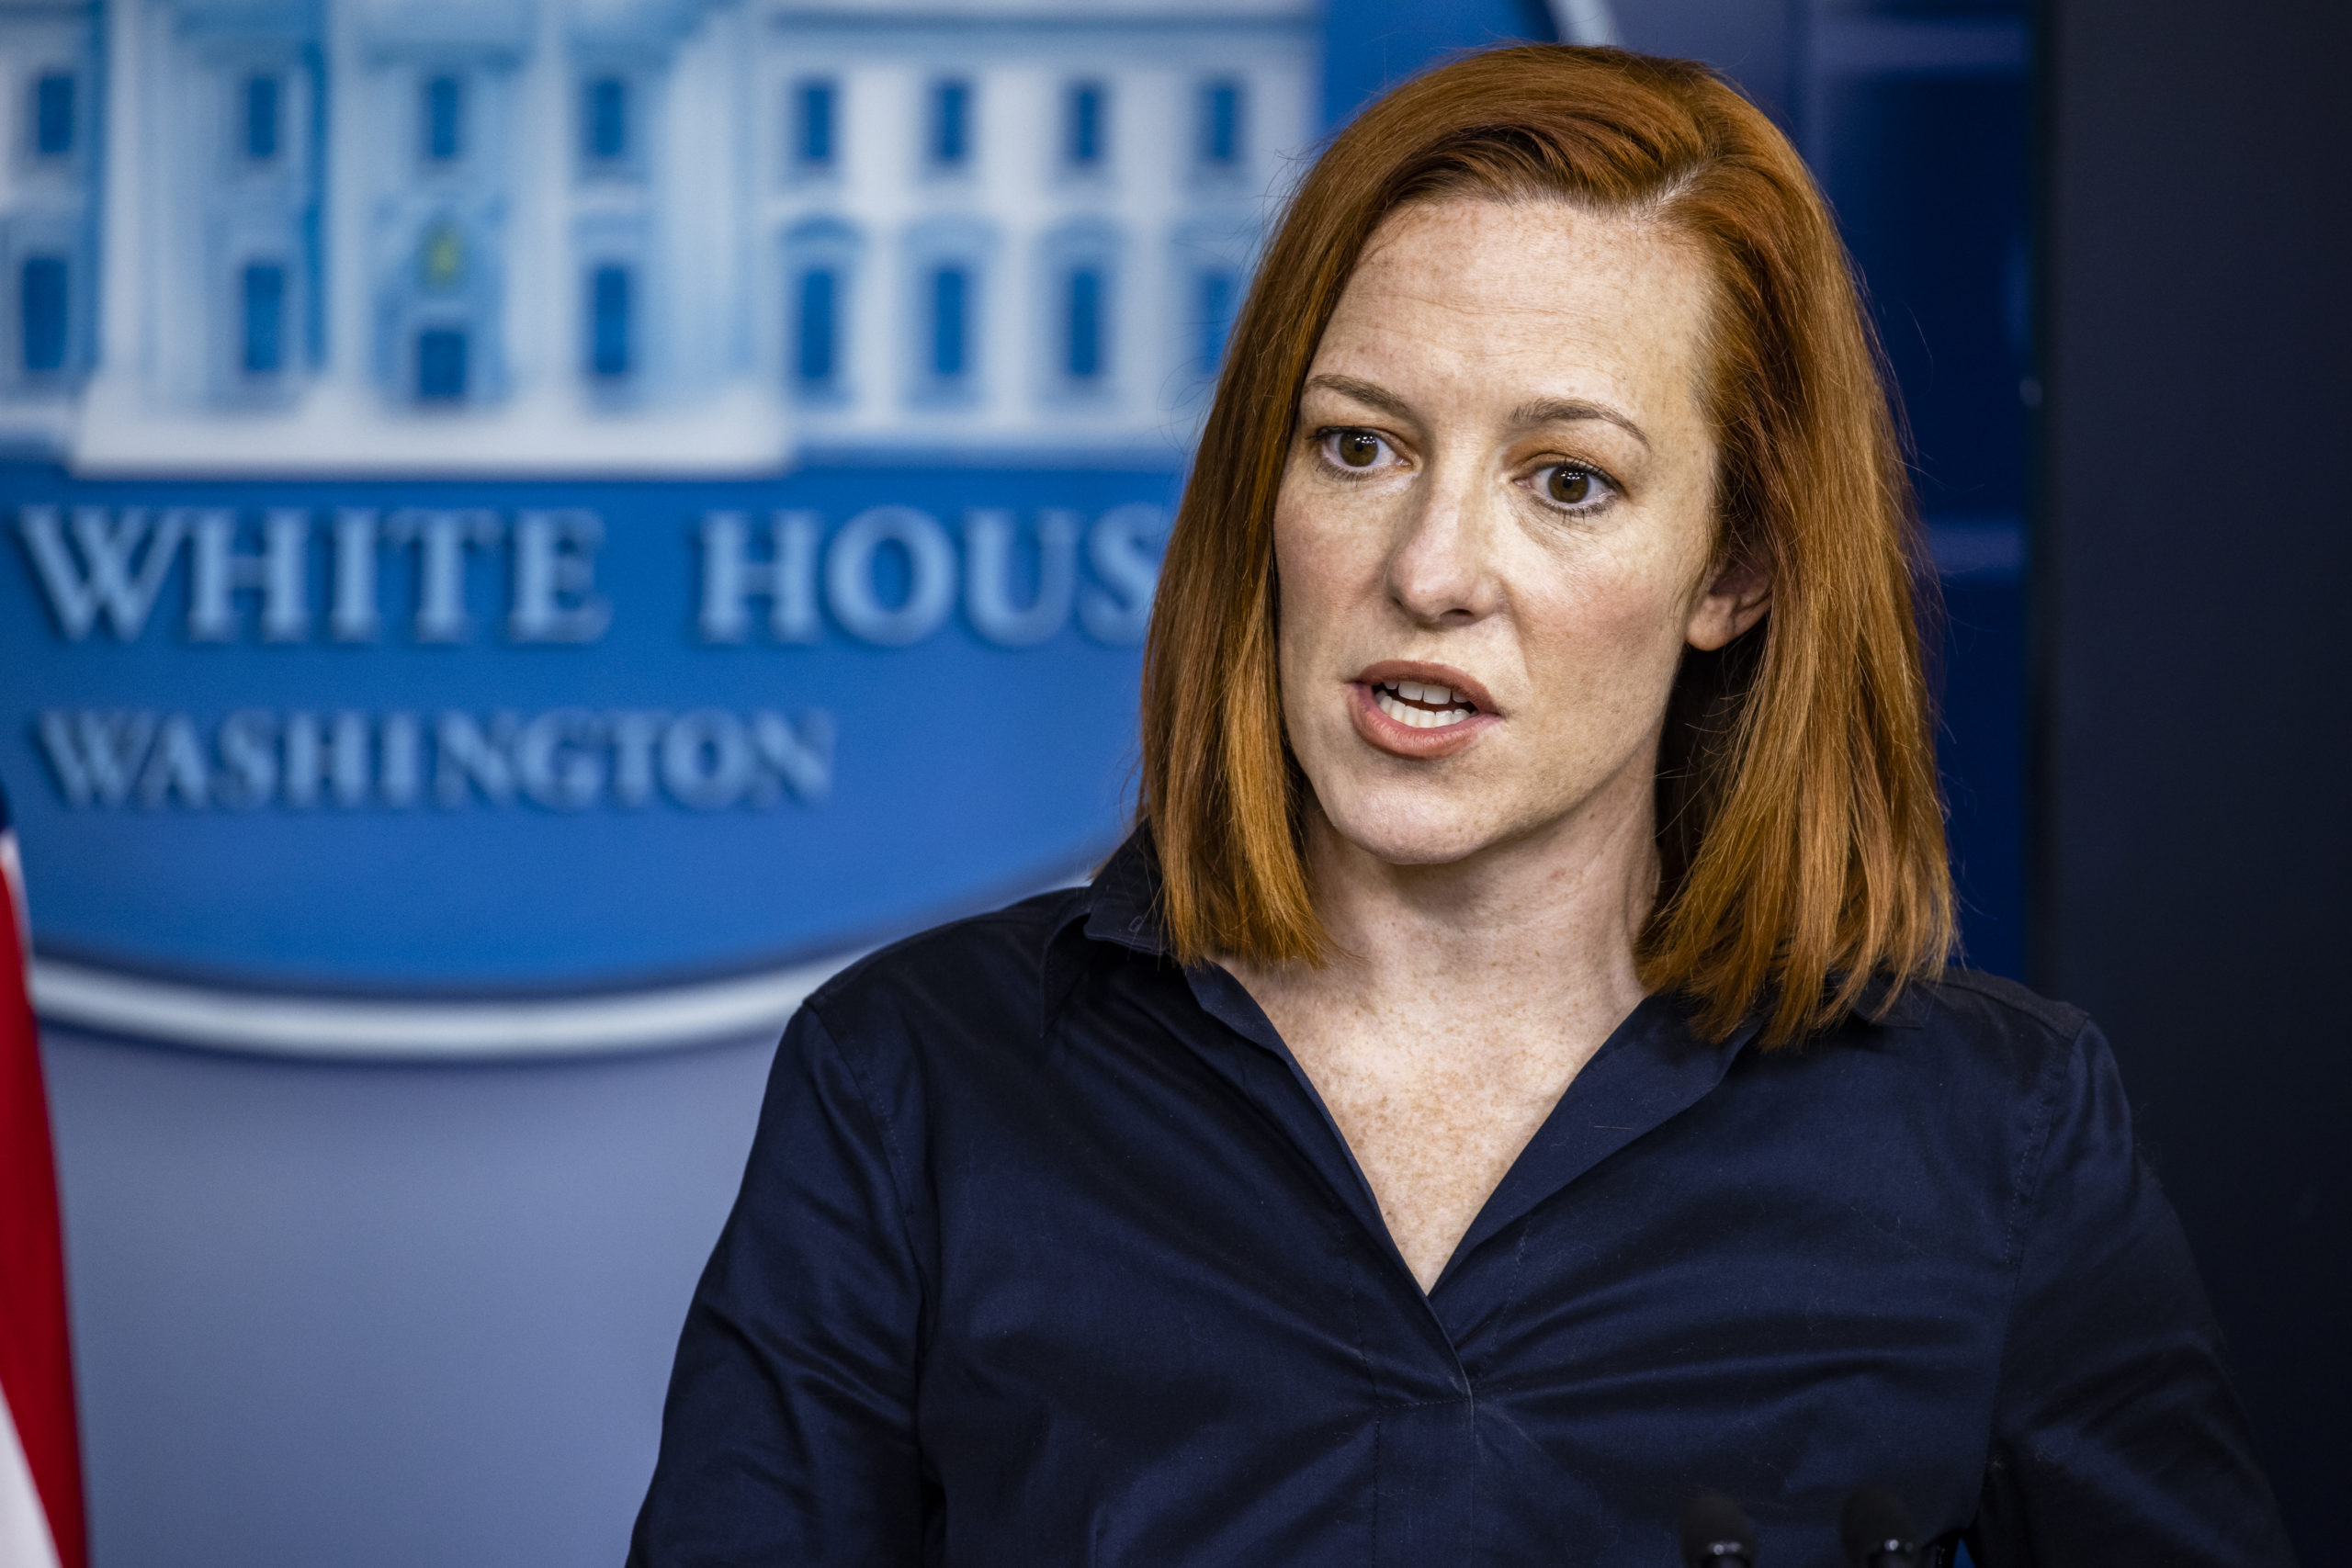 WASHINGTON, DC - MARCH 04: White House Press Secretary Jen Psaki speaks during the daily press briefing in the Brady Press Briefing Room at the White House on March 4, 2021 in Washington, DC. Secretary of Veterans Affairs Denis McDonough also spoke at the briefing. (Photo by Samuel Corum/Getty Images)